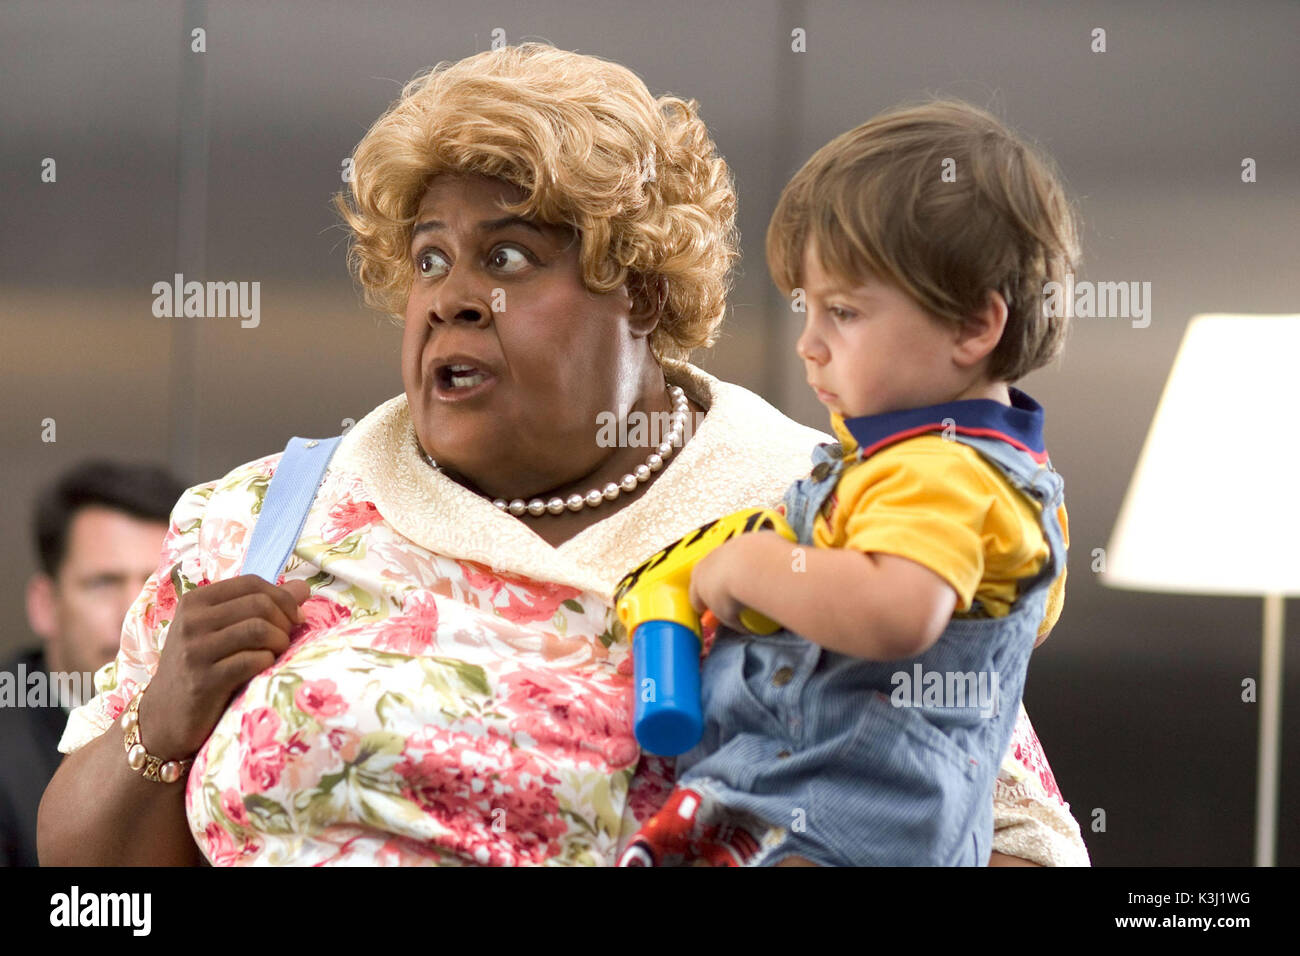 Big mommas house 2 out nannies us weekend box office - 2019 year